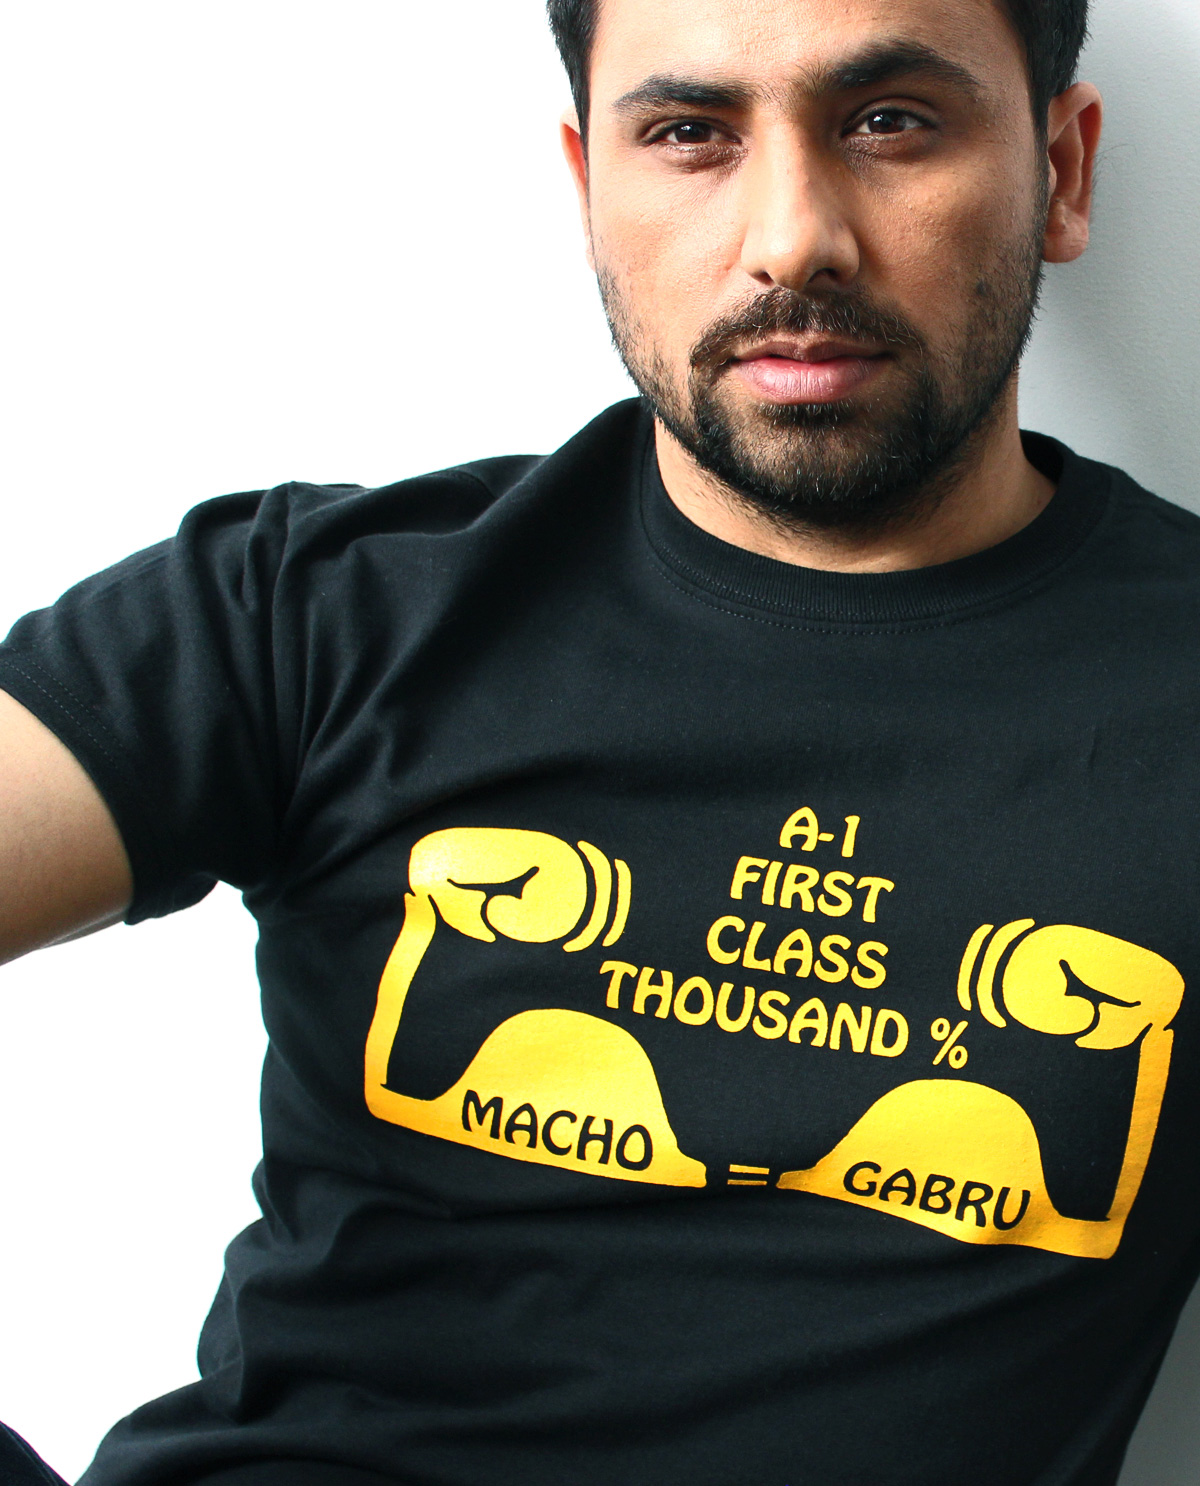 Macho Grabru graphic design t.shirt being worn by South Asian male model. South Asian Desi Themed Graphic Design t.shirts by Brown Man Clothing Co.